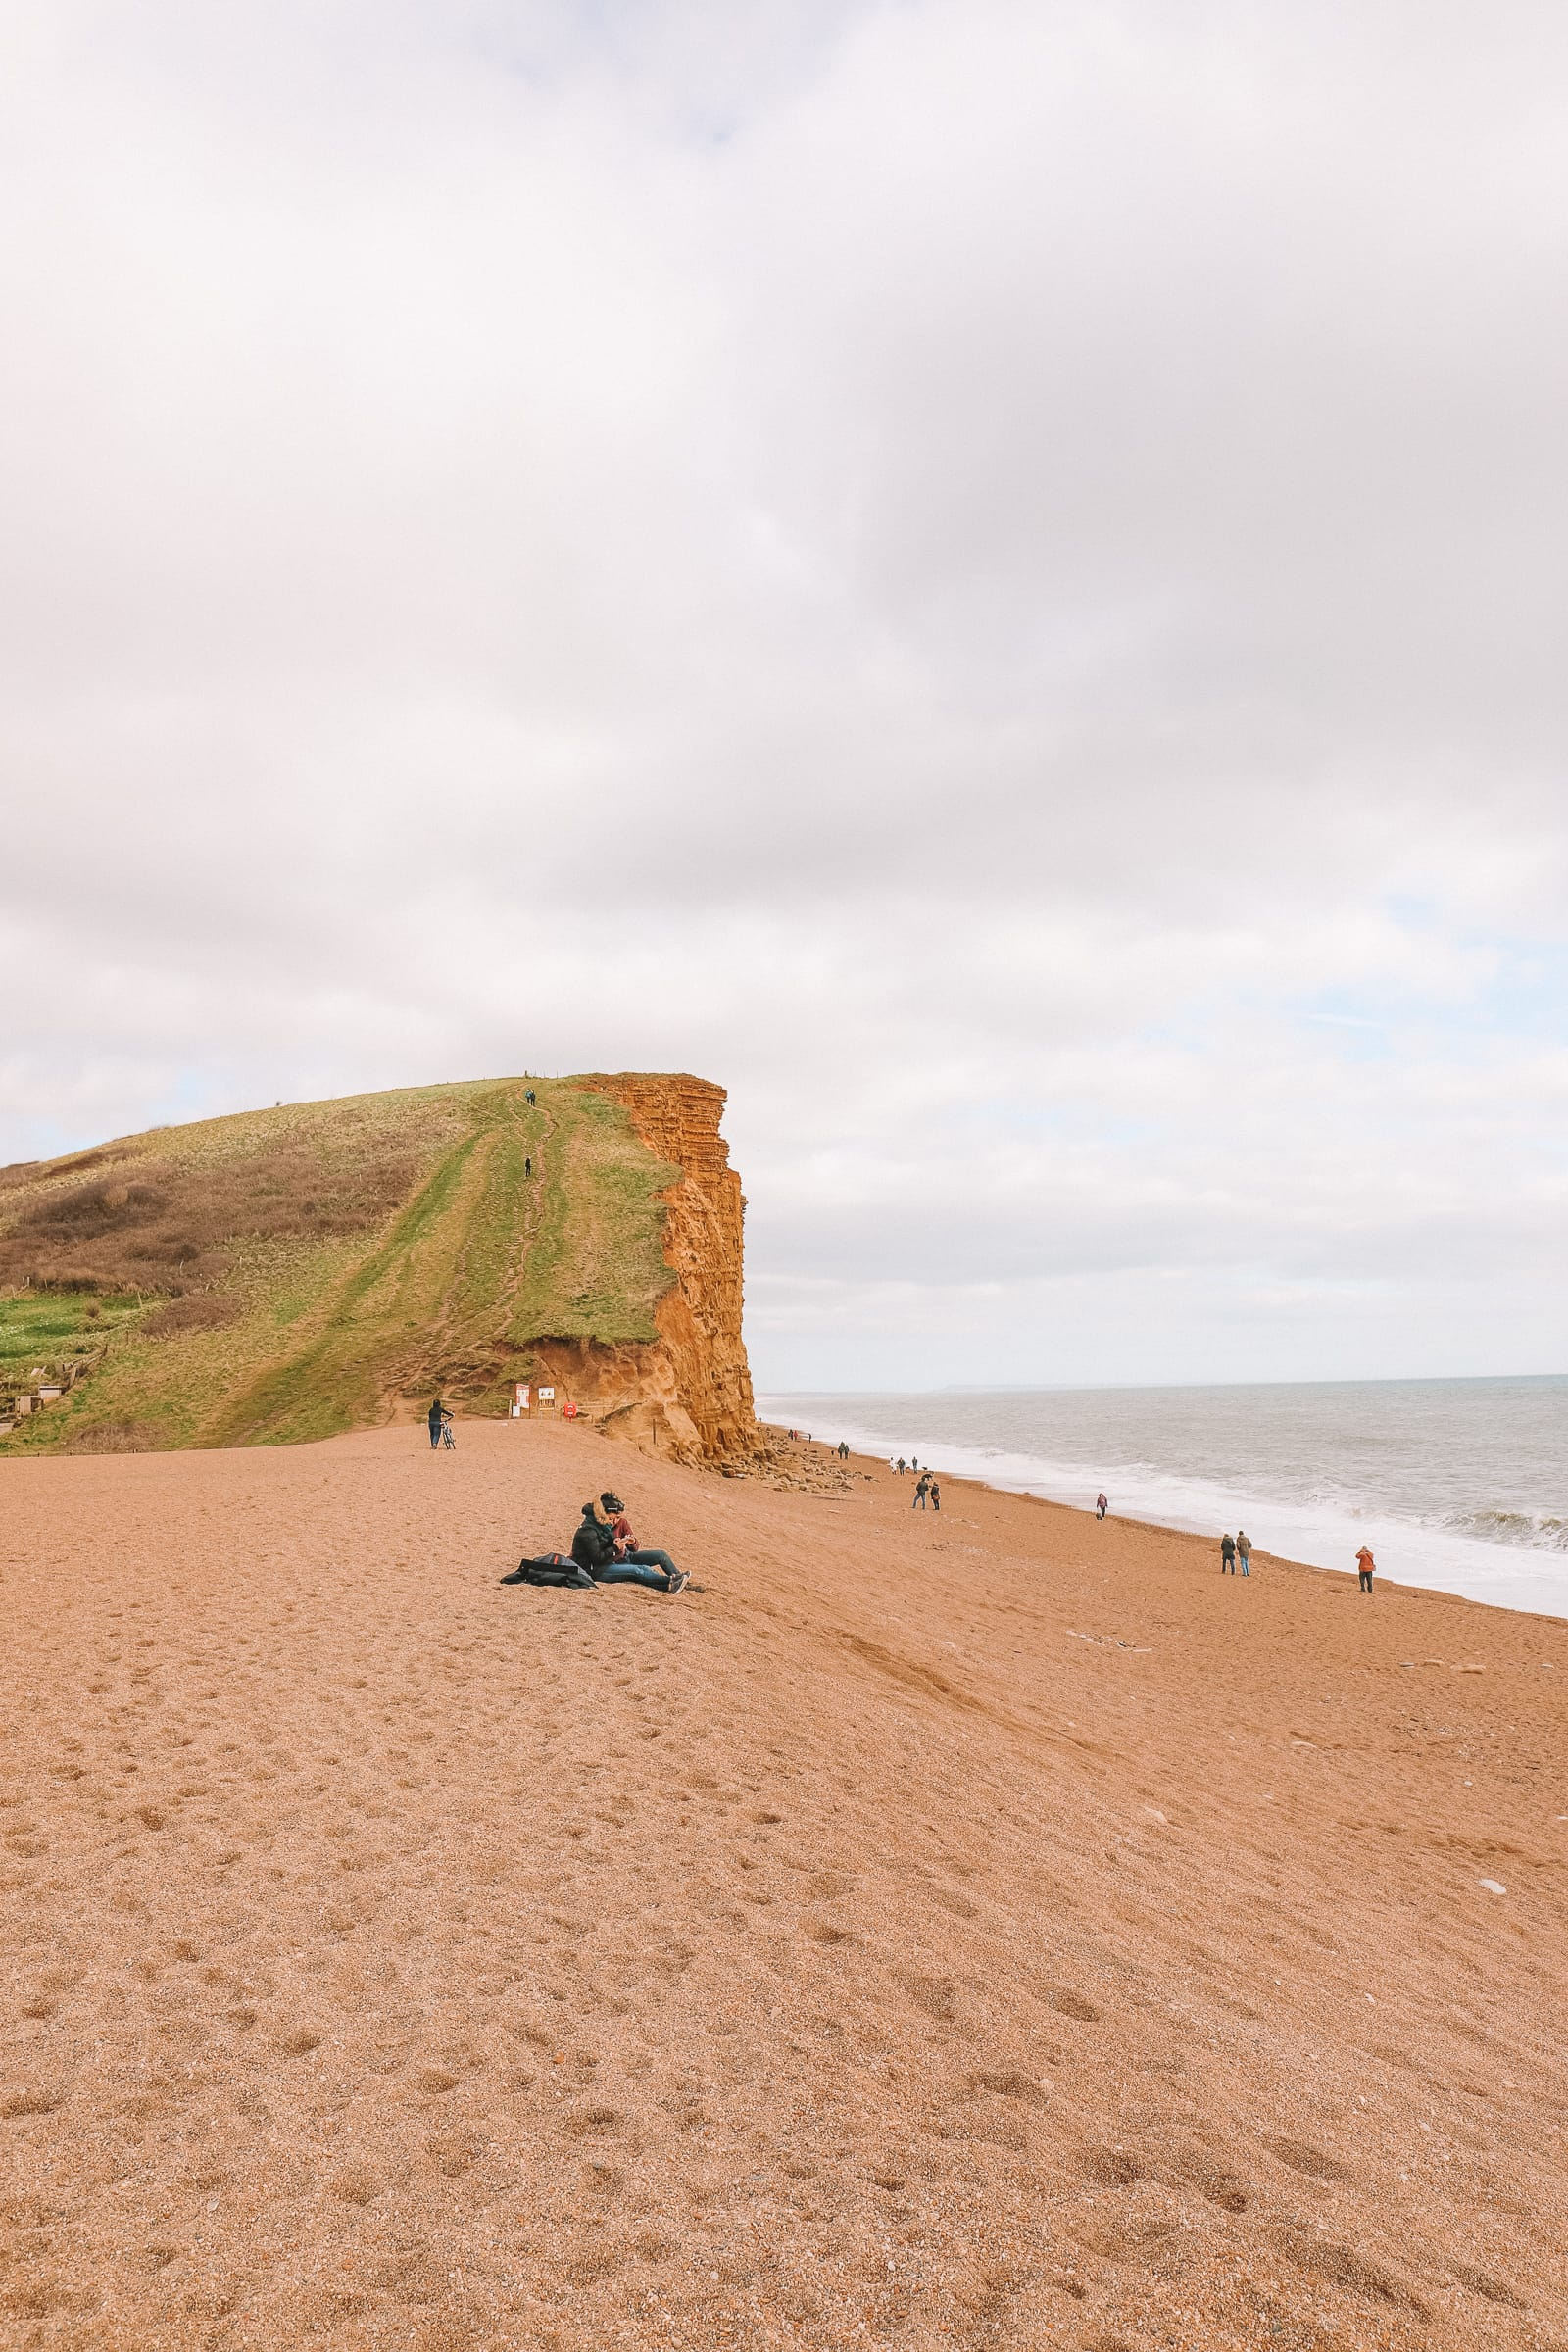 Searching For Dinosaurs And Fossils On The Jurassic Coast Of England (28)